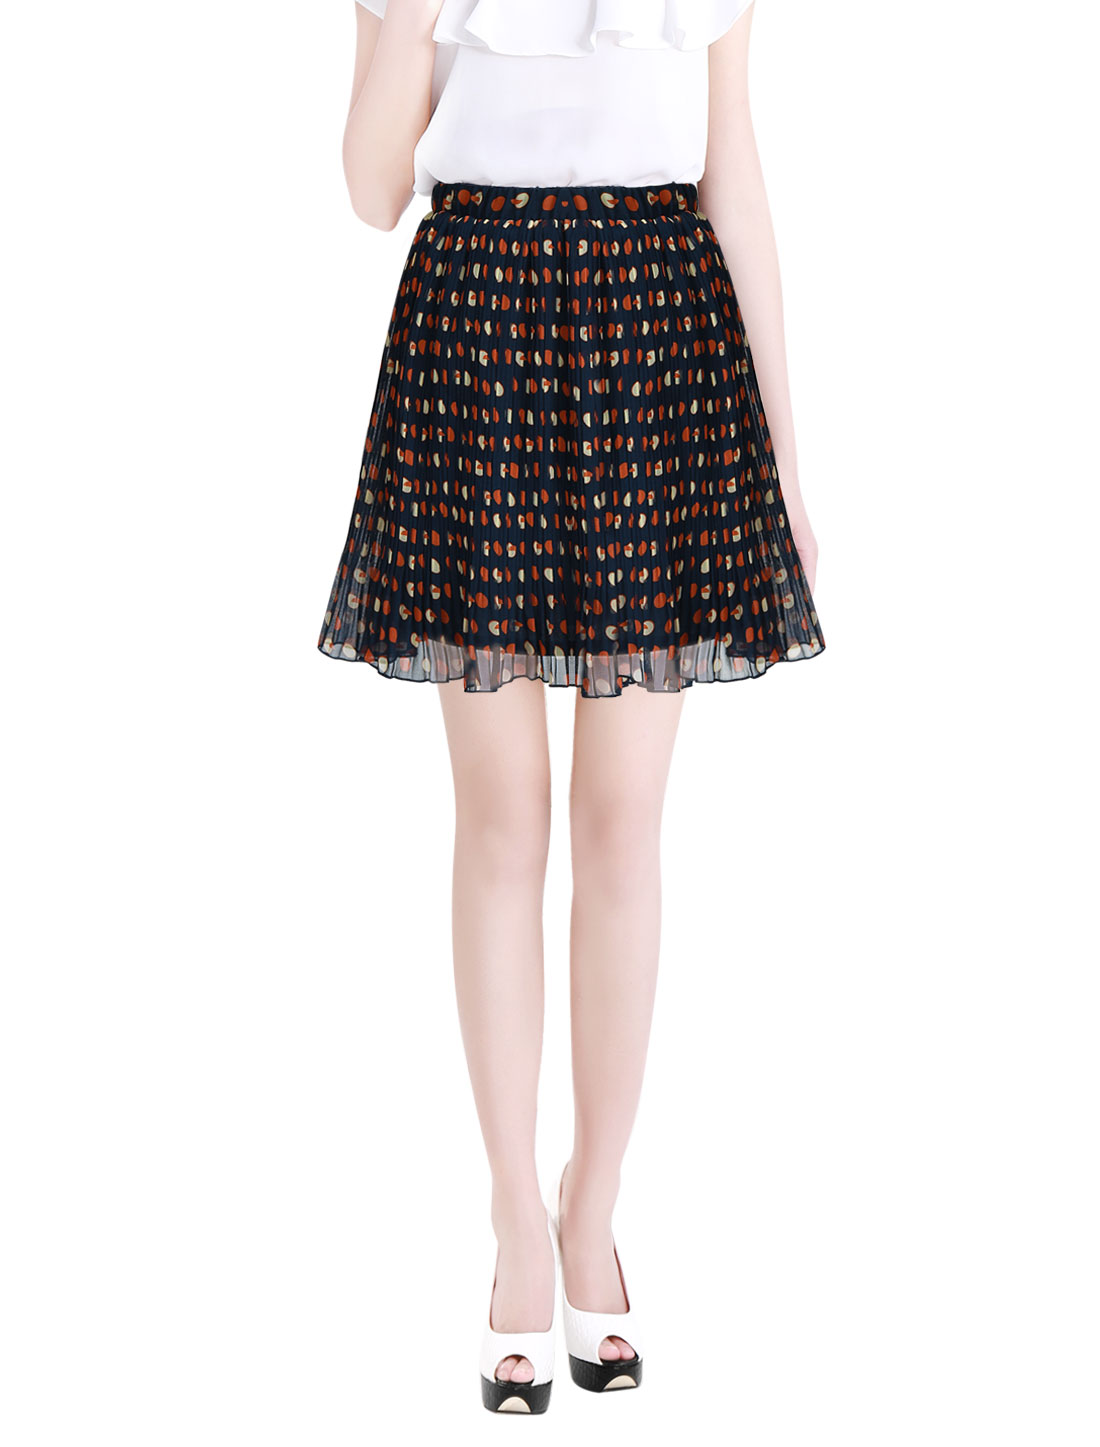 Ladies Elastic Waist Dots Print Fully Lined Mini Skirt Navy Blue Ochre L